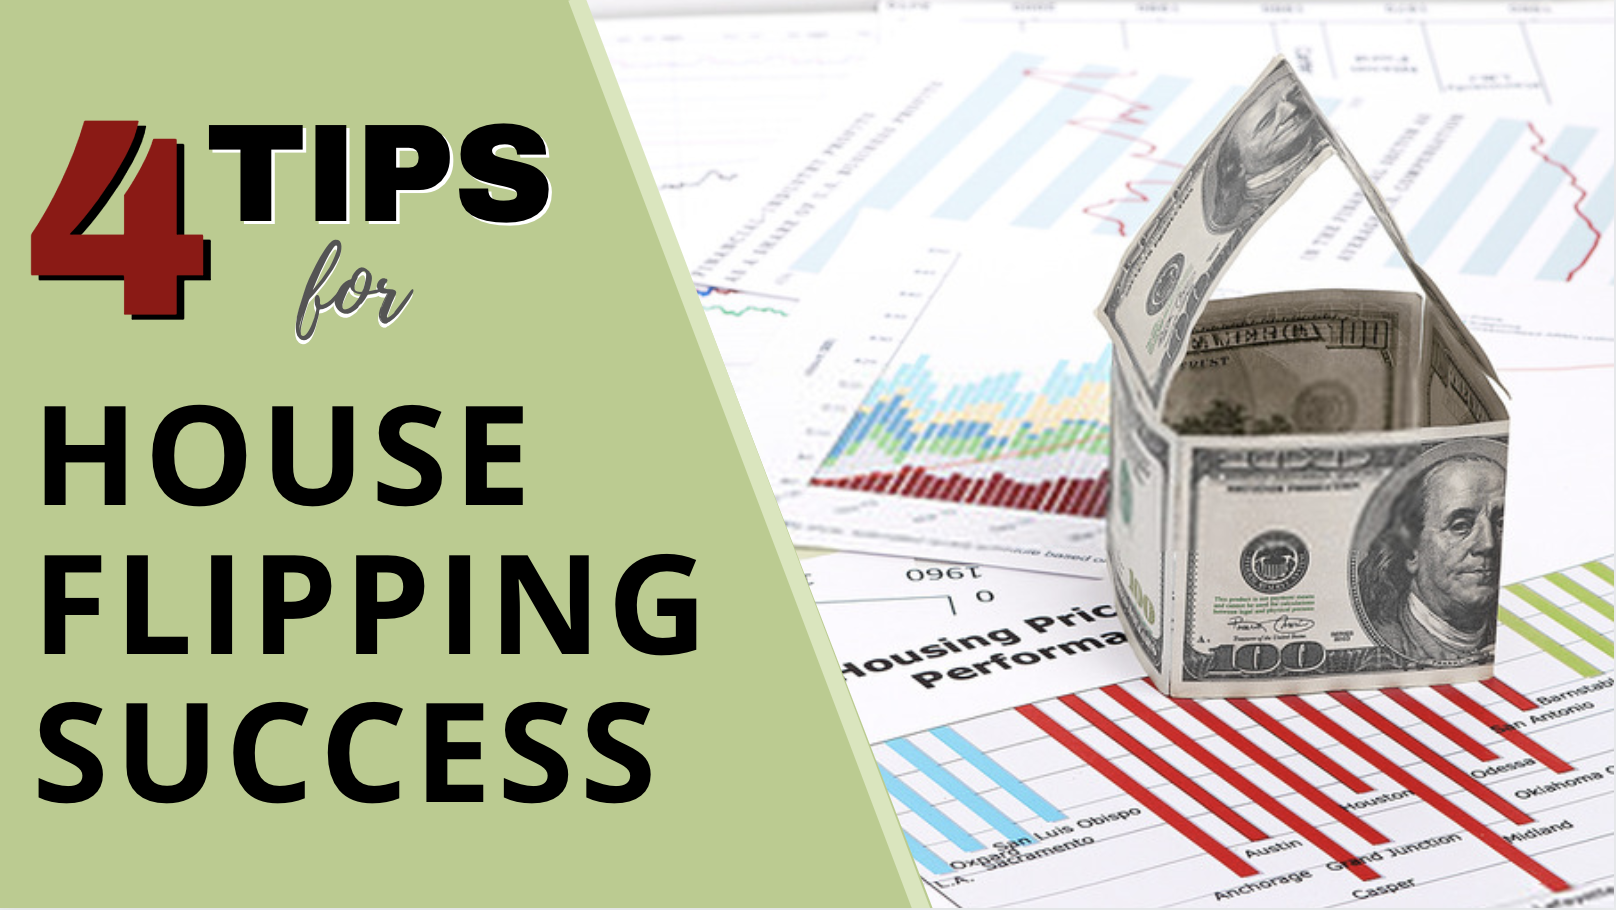 4 Tips for House Flipping Success